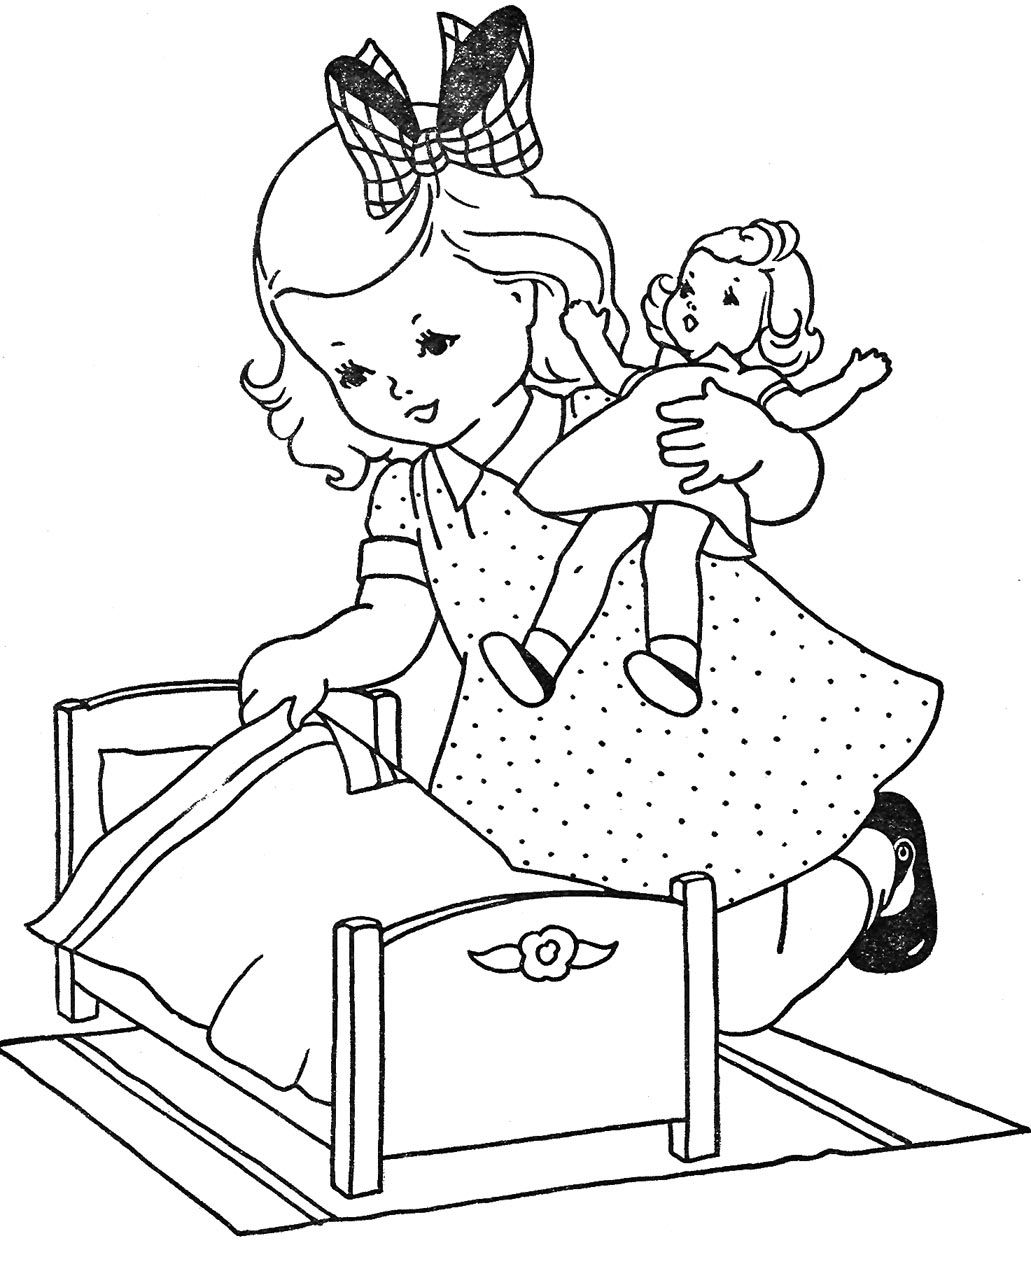 coloring pages for kids girls printable for girls lisa frank coloring pages kids pages girls for kids coloring